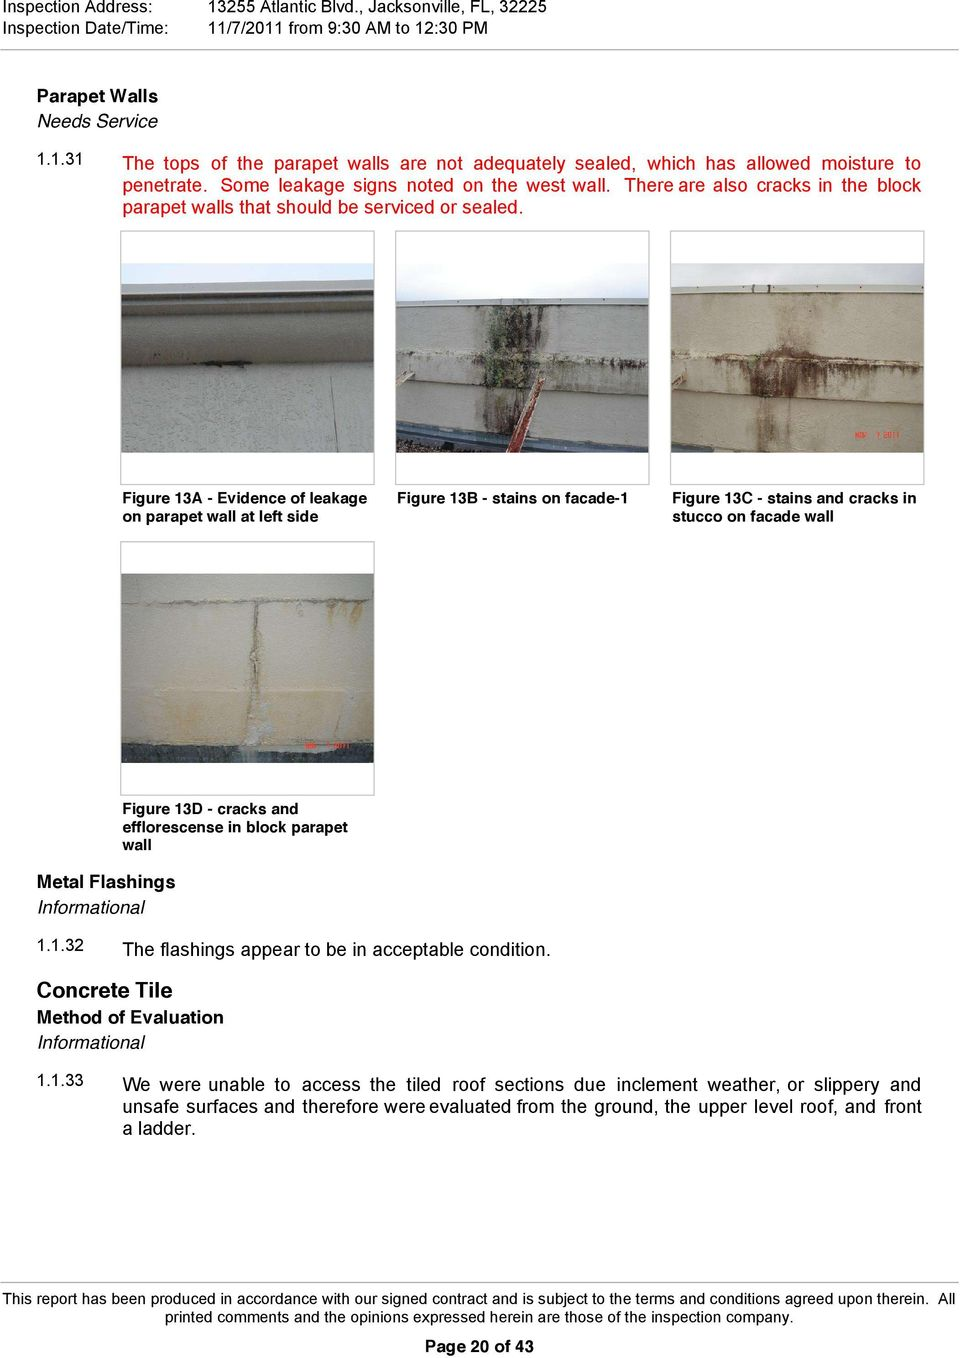 Figure 13A - Evidence of leakage on parapet wall at left side Figure 13B - stains on facade-1 Figure 13C - stains and cracks in stucco on facade wall Metal Flashings Figure 13D - cracks and